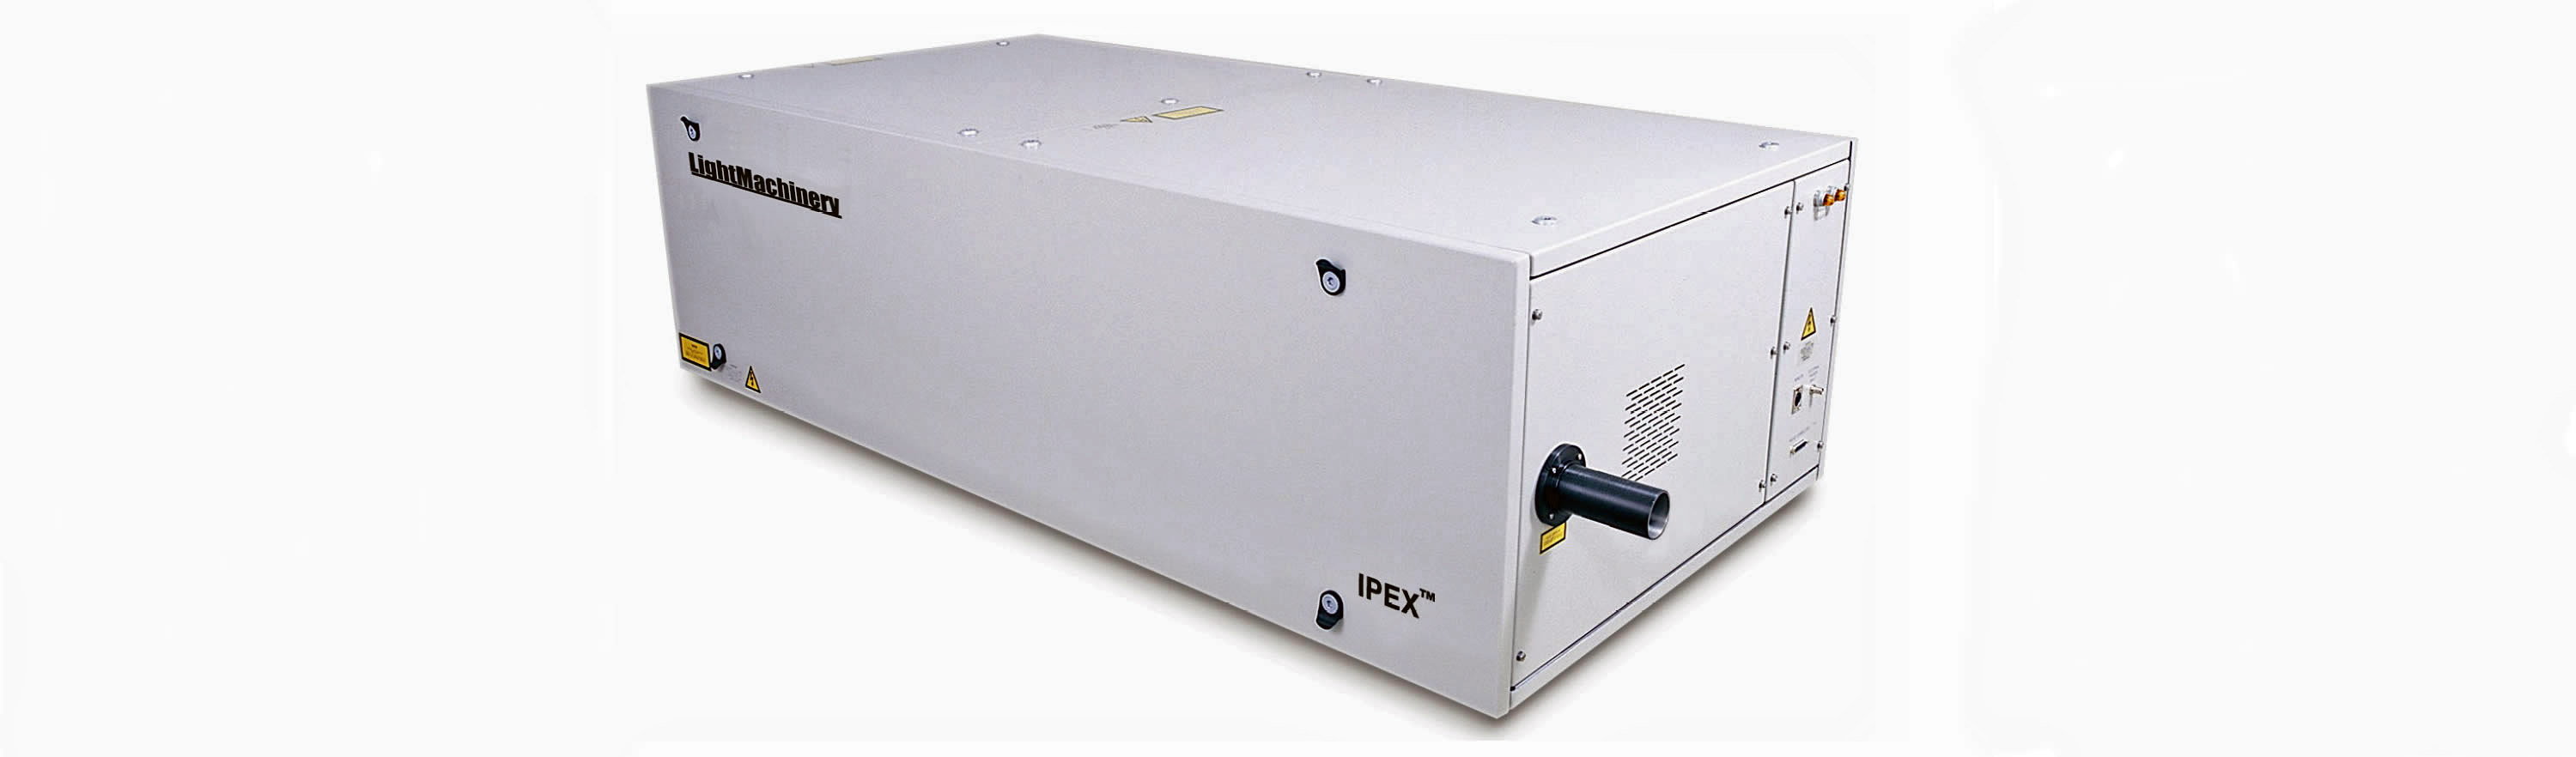 MACE possesses an IPEX 3000 series CO2 laser by LightMachinery Inc. Image via LightMachinery.